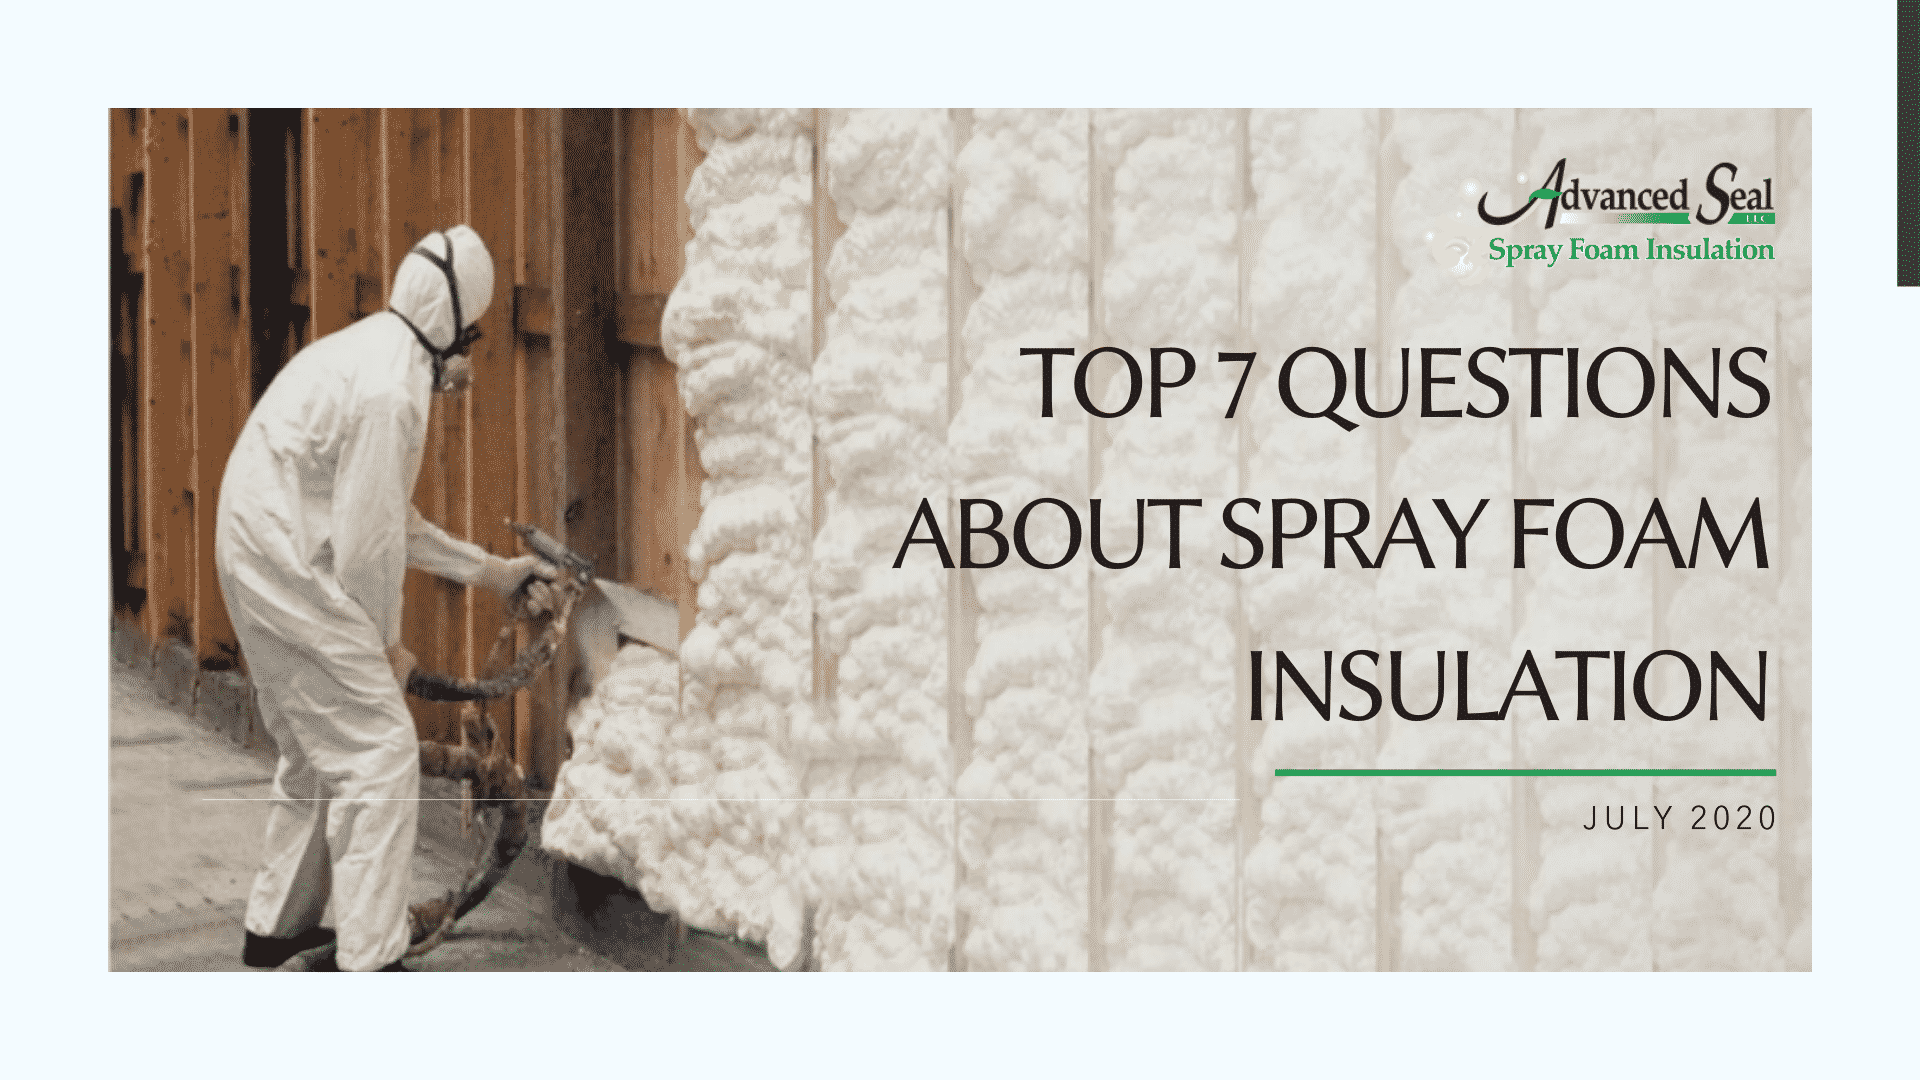 Top 7 Questions about Spray Foam Insulation